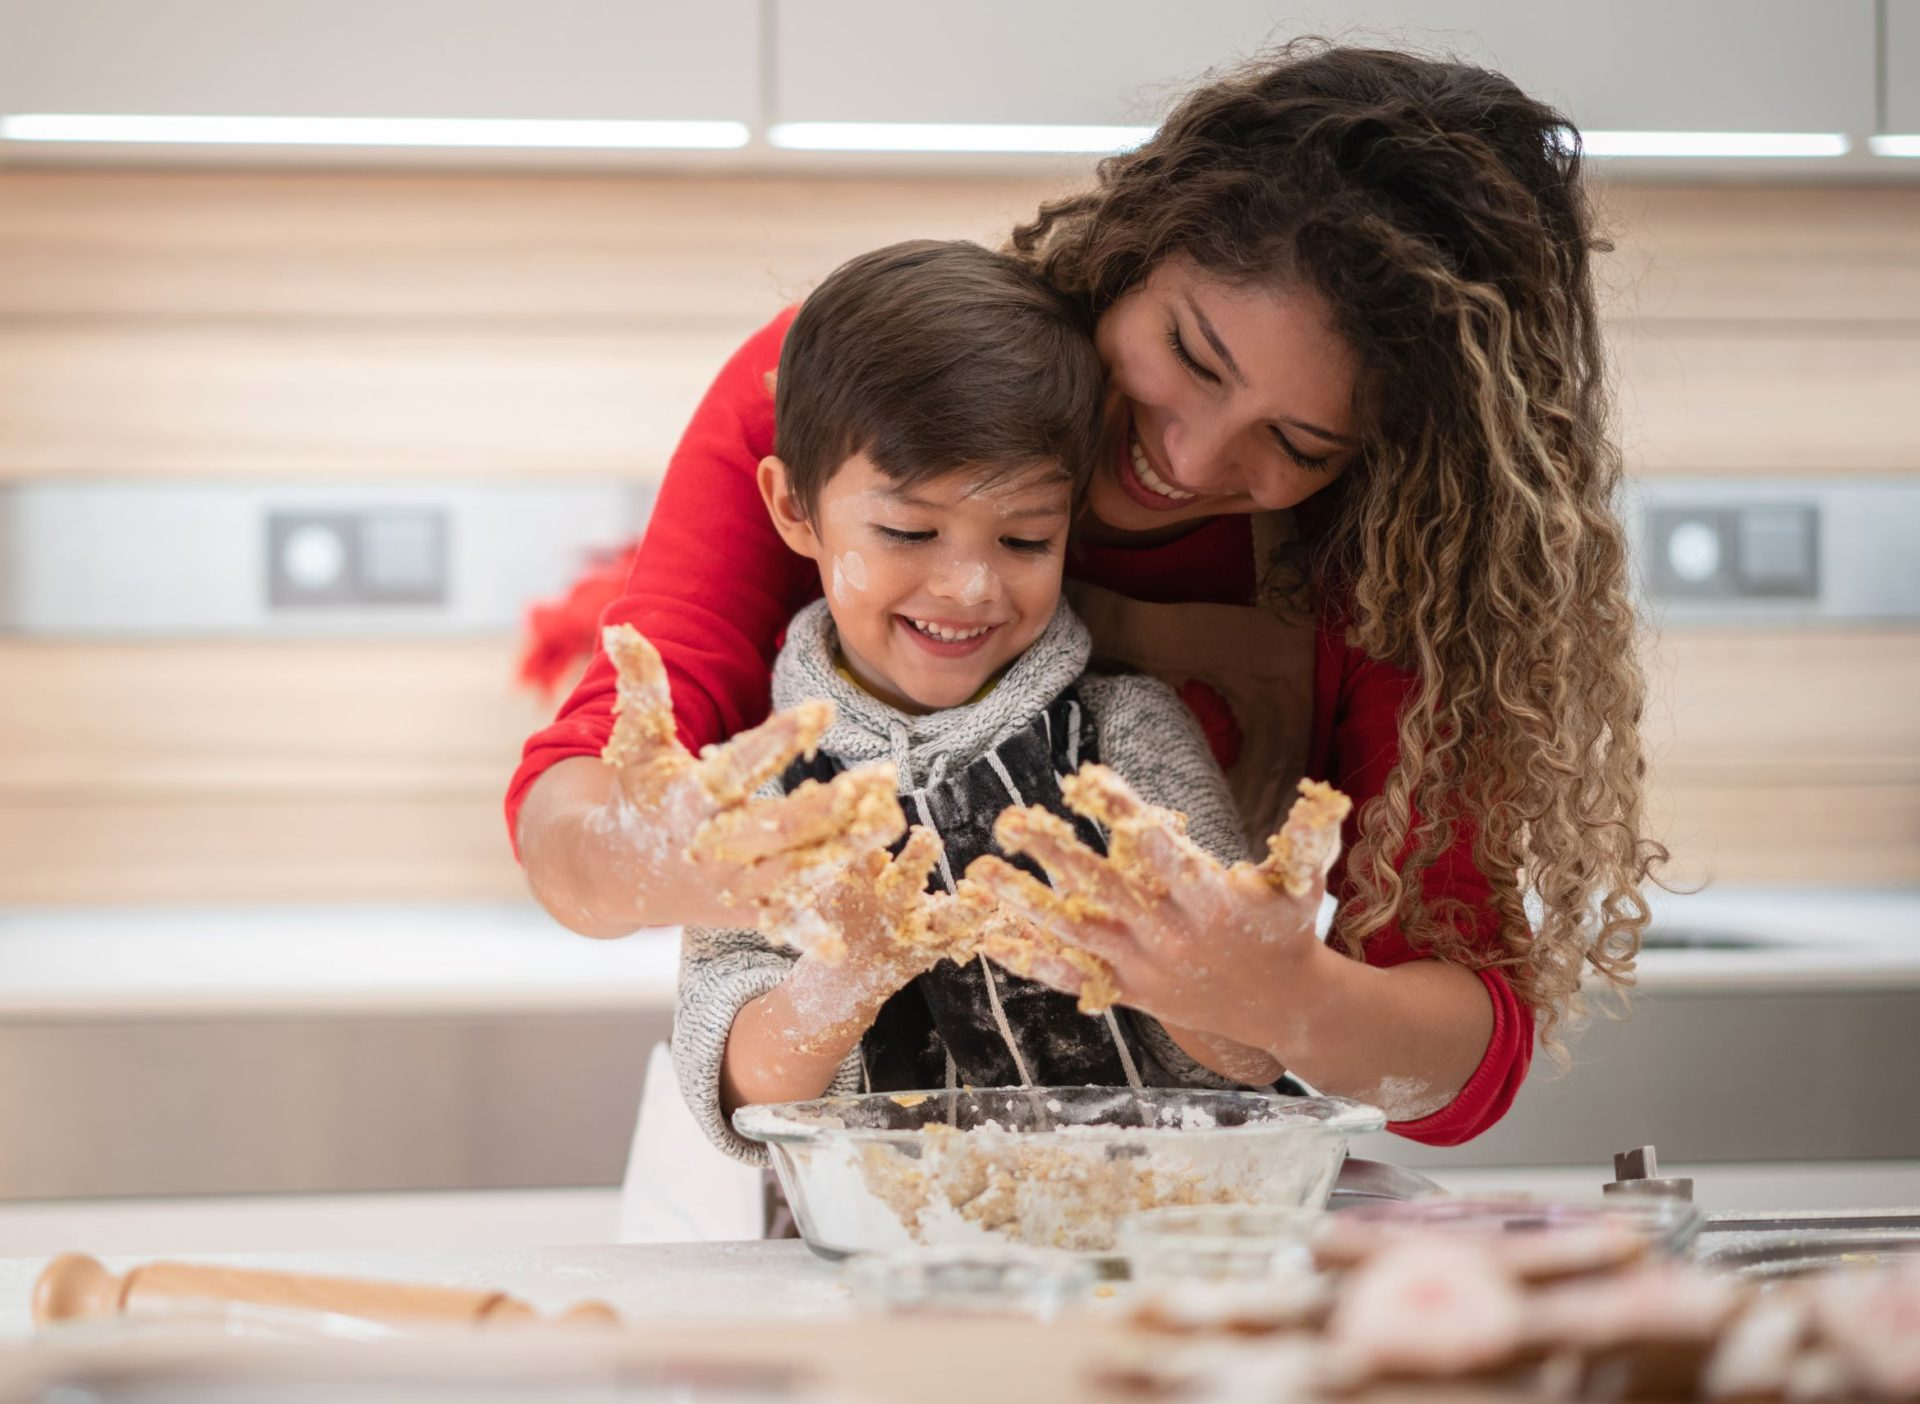 Mother and child getting their hands dirty while baking